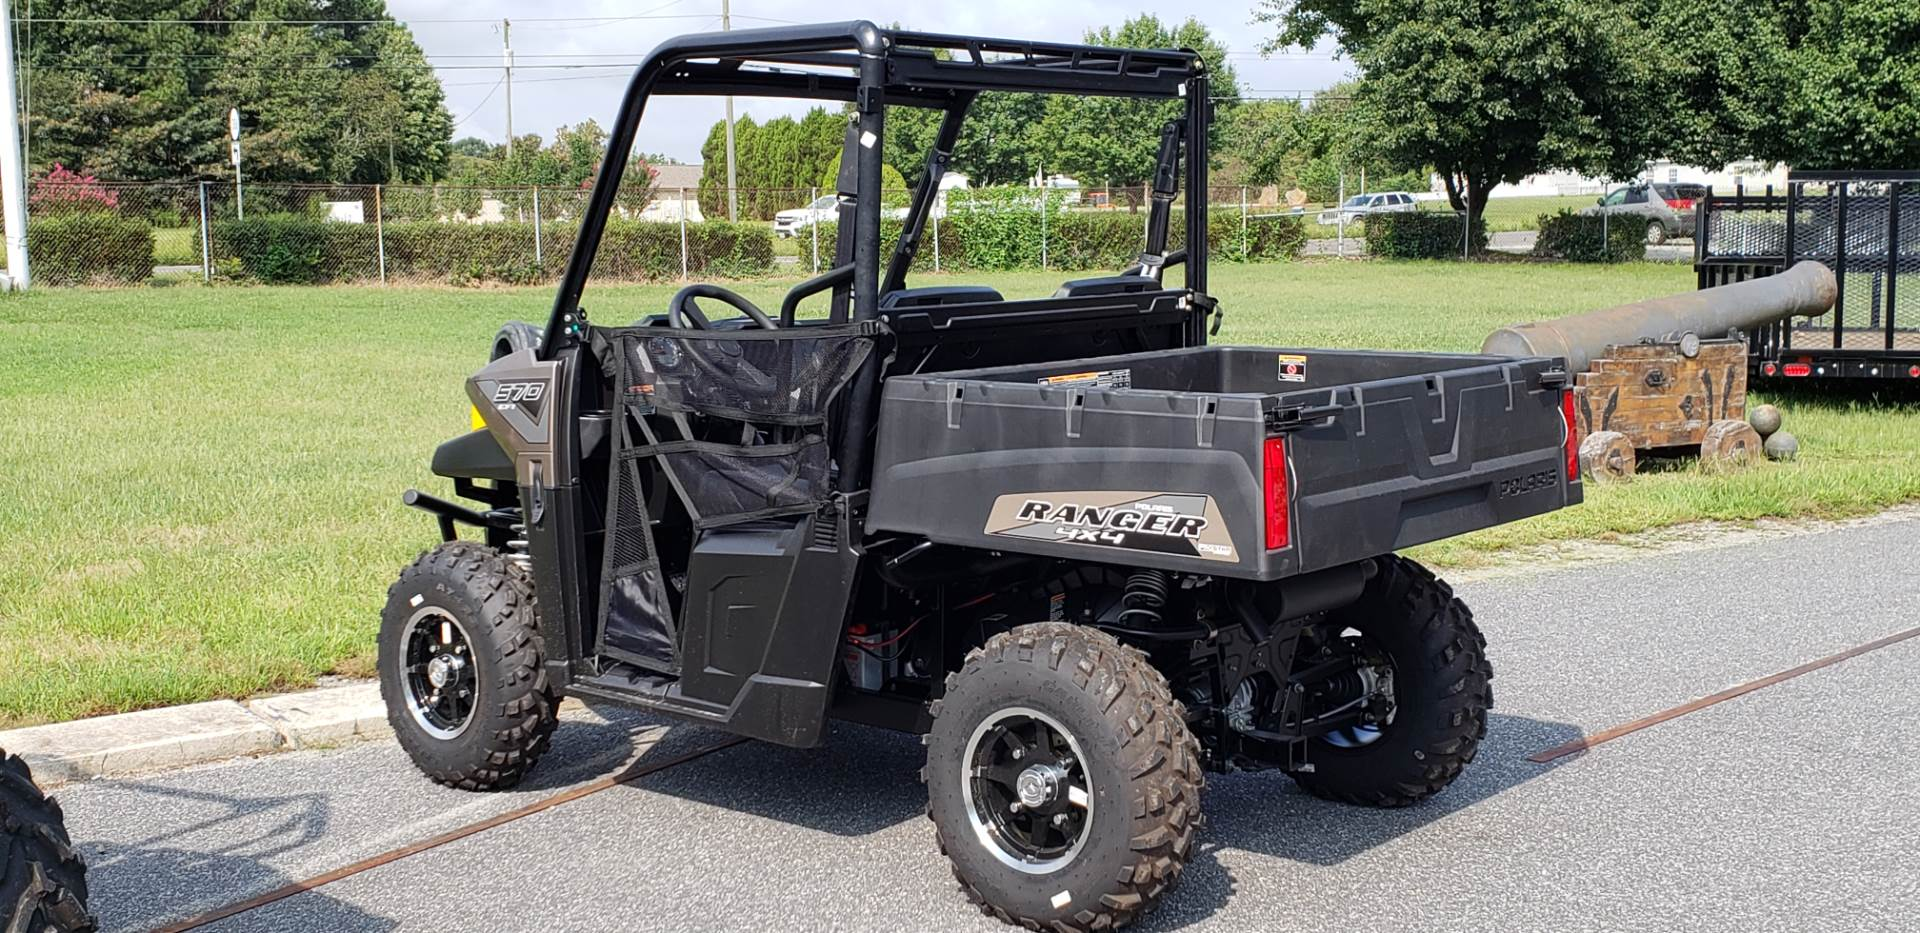 2019 Polaris Ranger 570 EPS in Hayes, Virginia - Photo 2